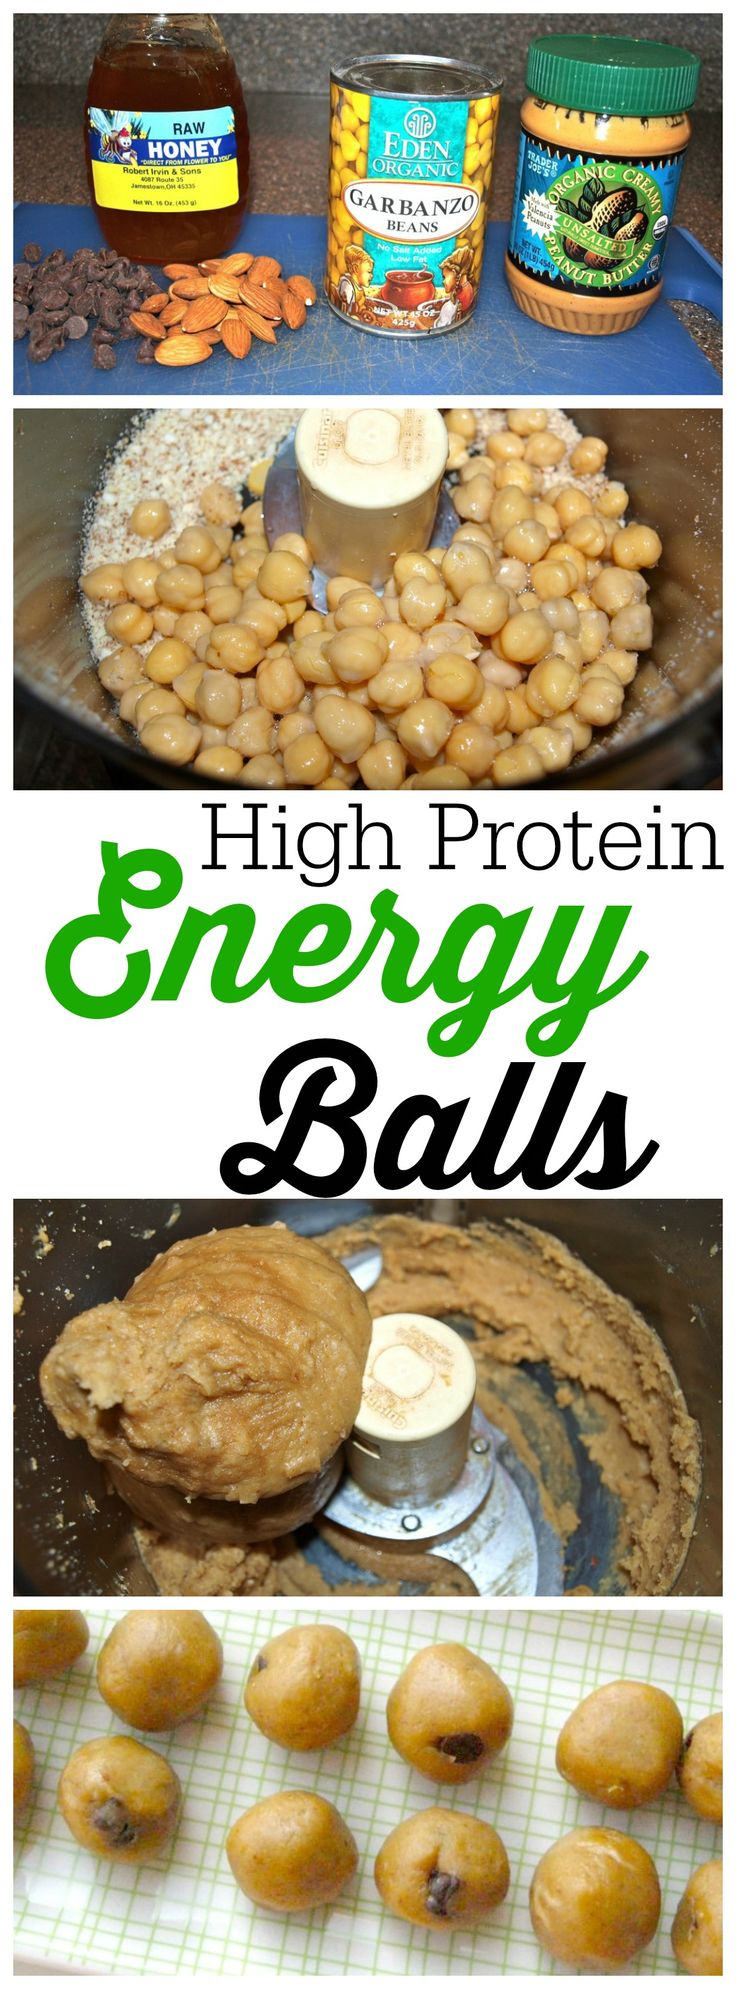 "Here's what one commenter said about these High Protein Energy Balls: ""I just had to tell you how much my family & I love this recipe! I've made it at least a dozen times and they just seem to get better tasting each time. My picky 17-year-old daughter loves them, and I just gave them to my 7-year-old niece last week for breakfast. She loved them so much she asked me to make her a batch to keep at her house. I took them over to her today, and my sister-in-law just called for the recipe. ..."